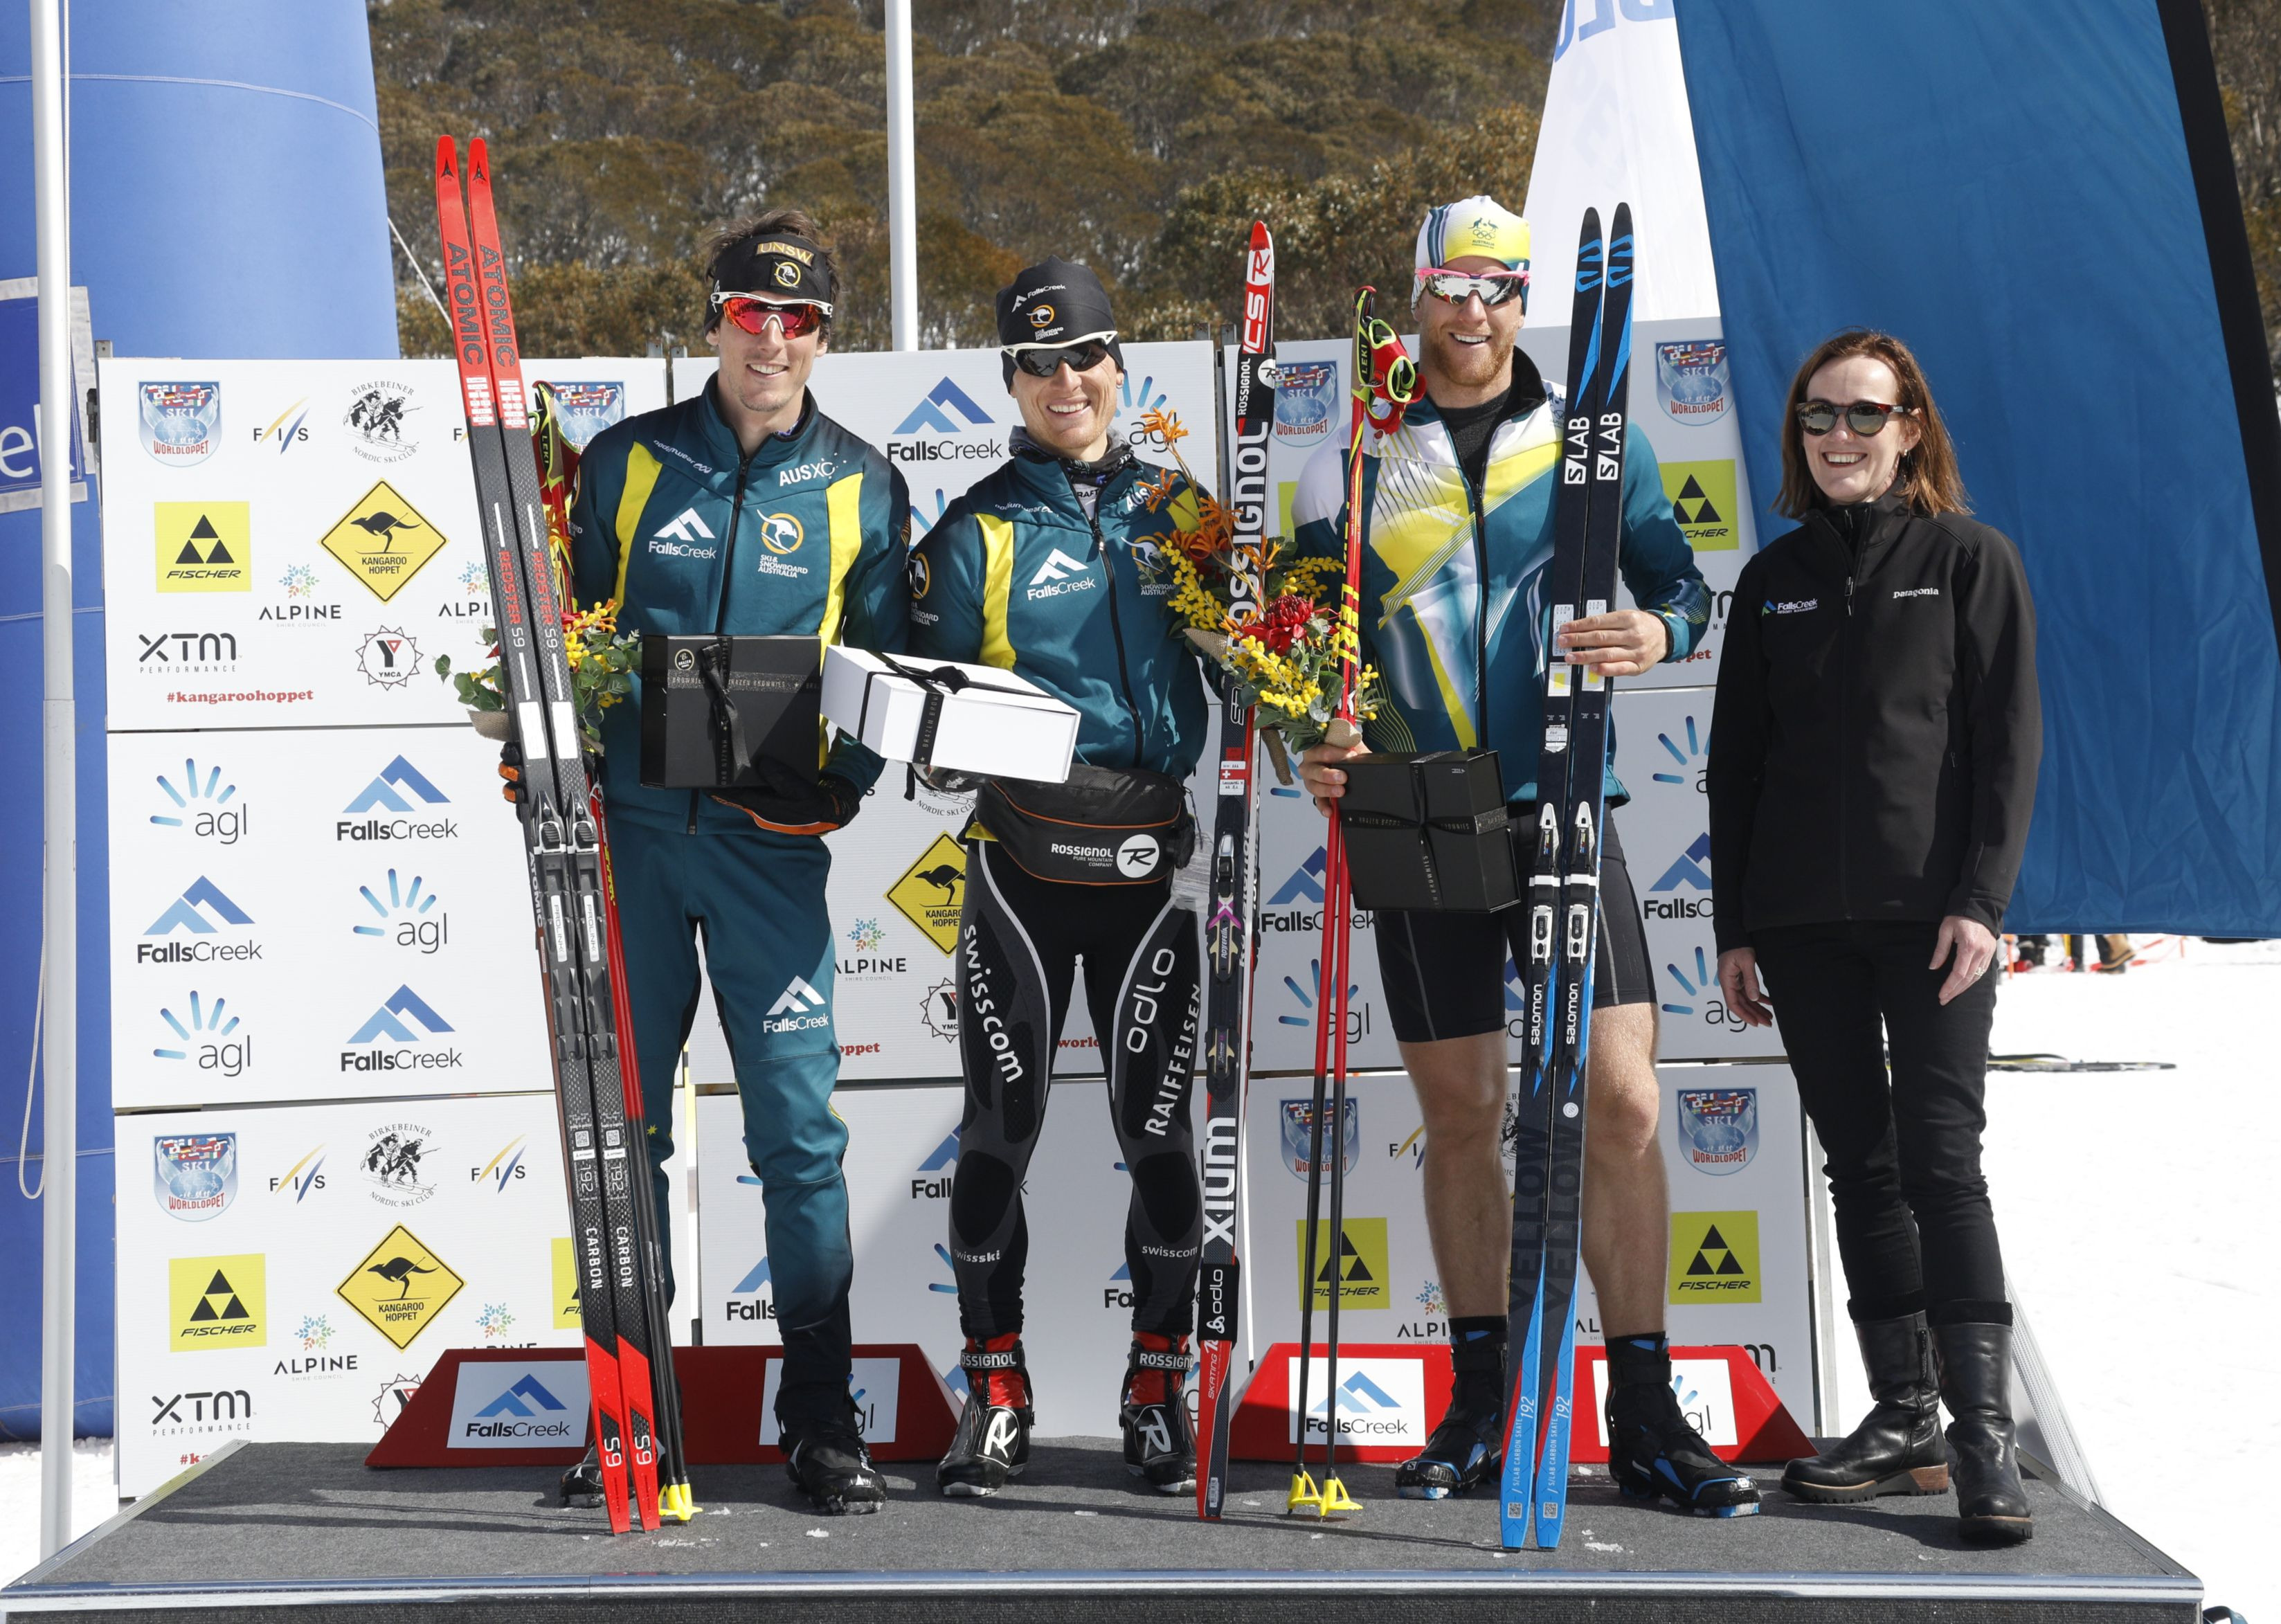 Hoppet podium - Men